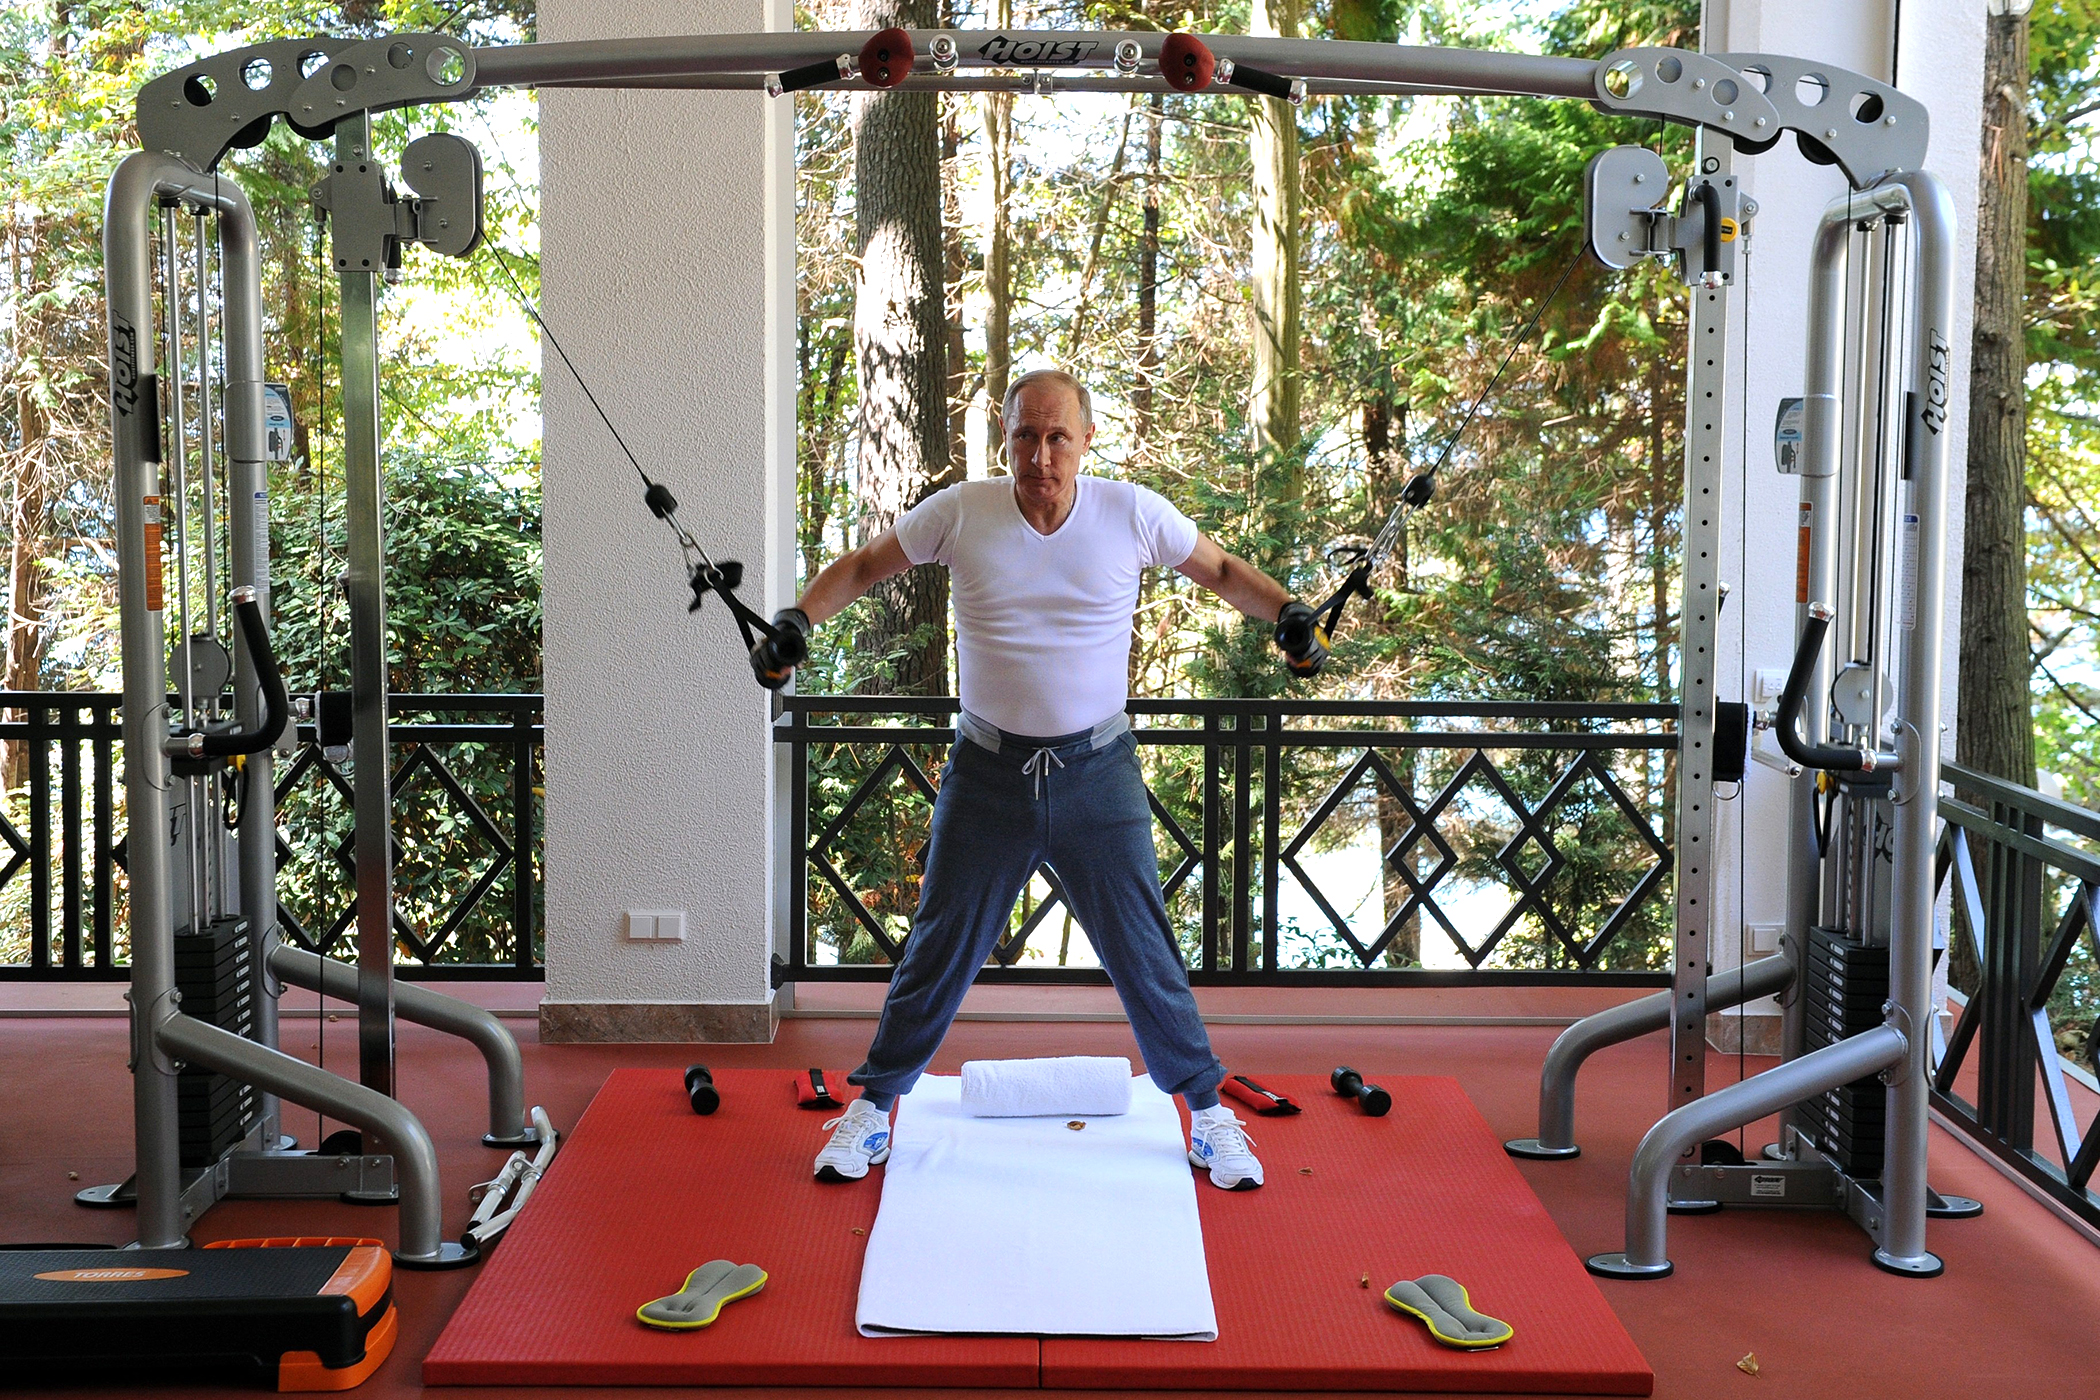 Putin working out in cashmere sweatpants